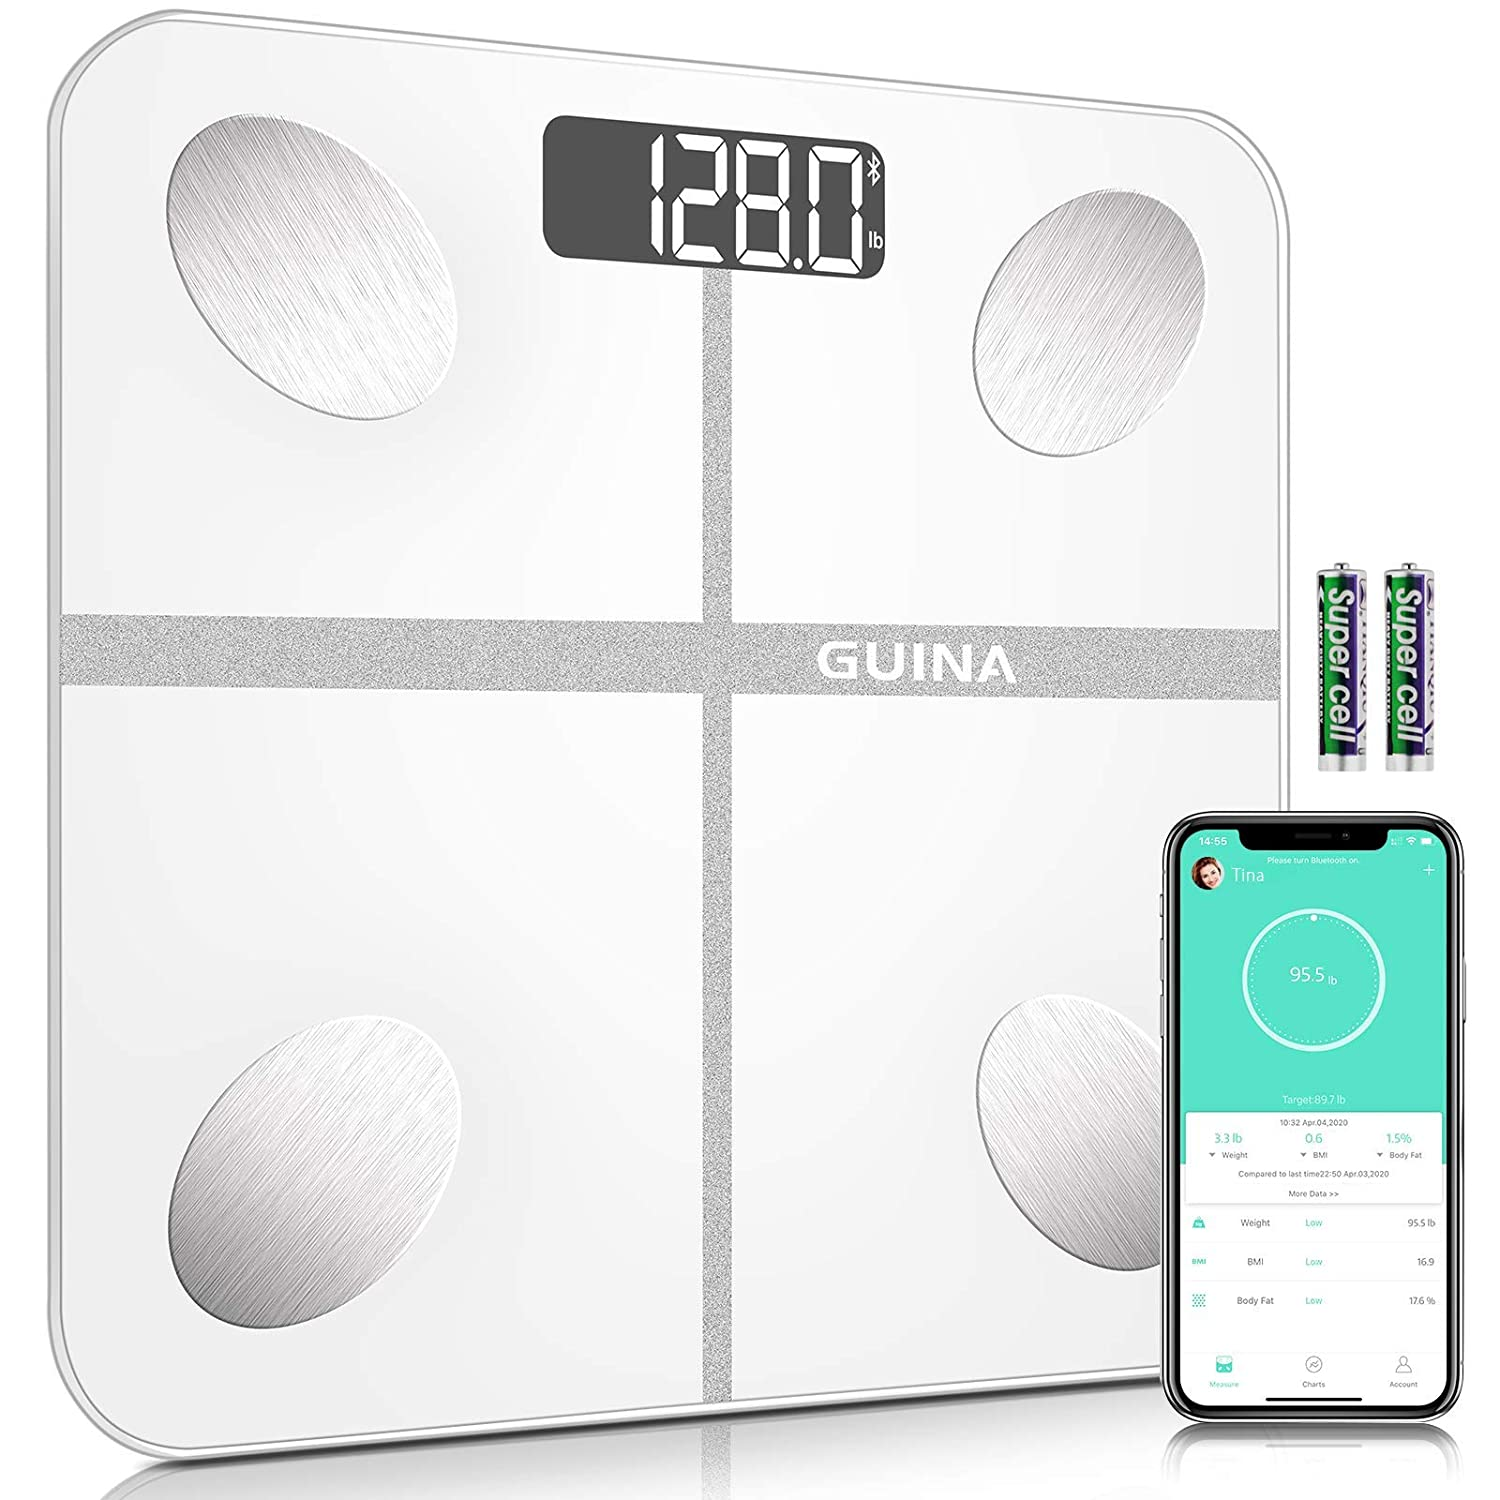 Body Fat Scale Bluetooth Digital, Bathroom Scale with BMI, Weight Scale with Body Fat Scale with 4 Hight Precision Sensors,Shatter-Resistant Tempered Glass and APP (White)